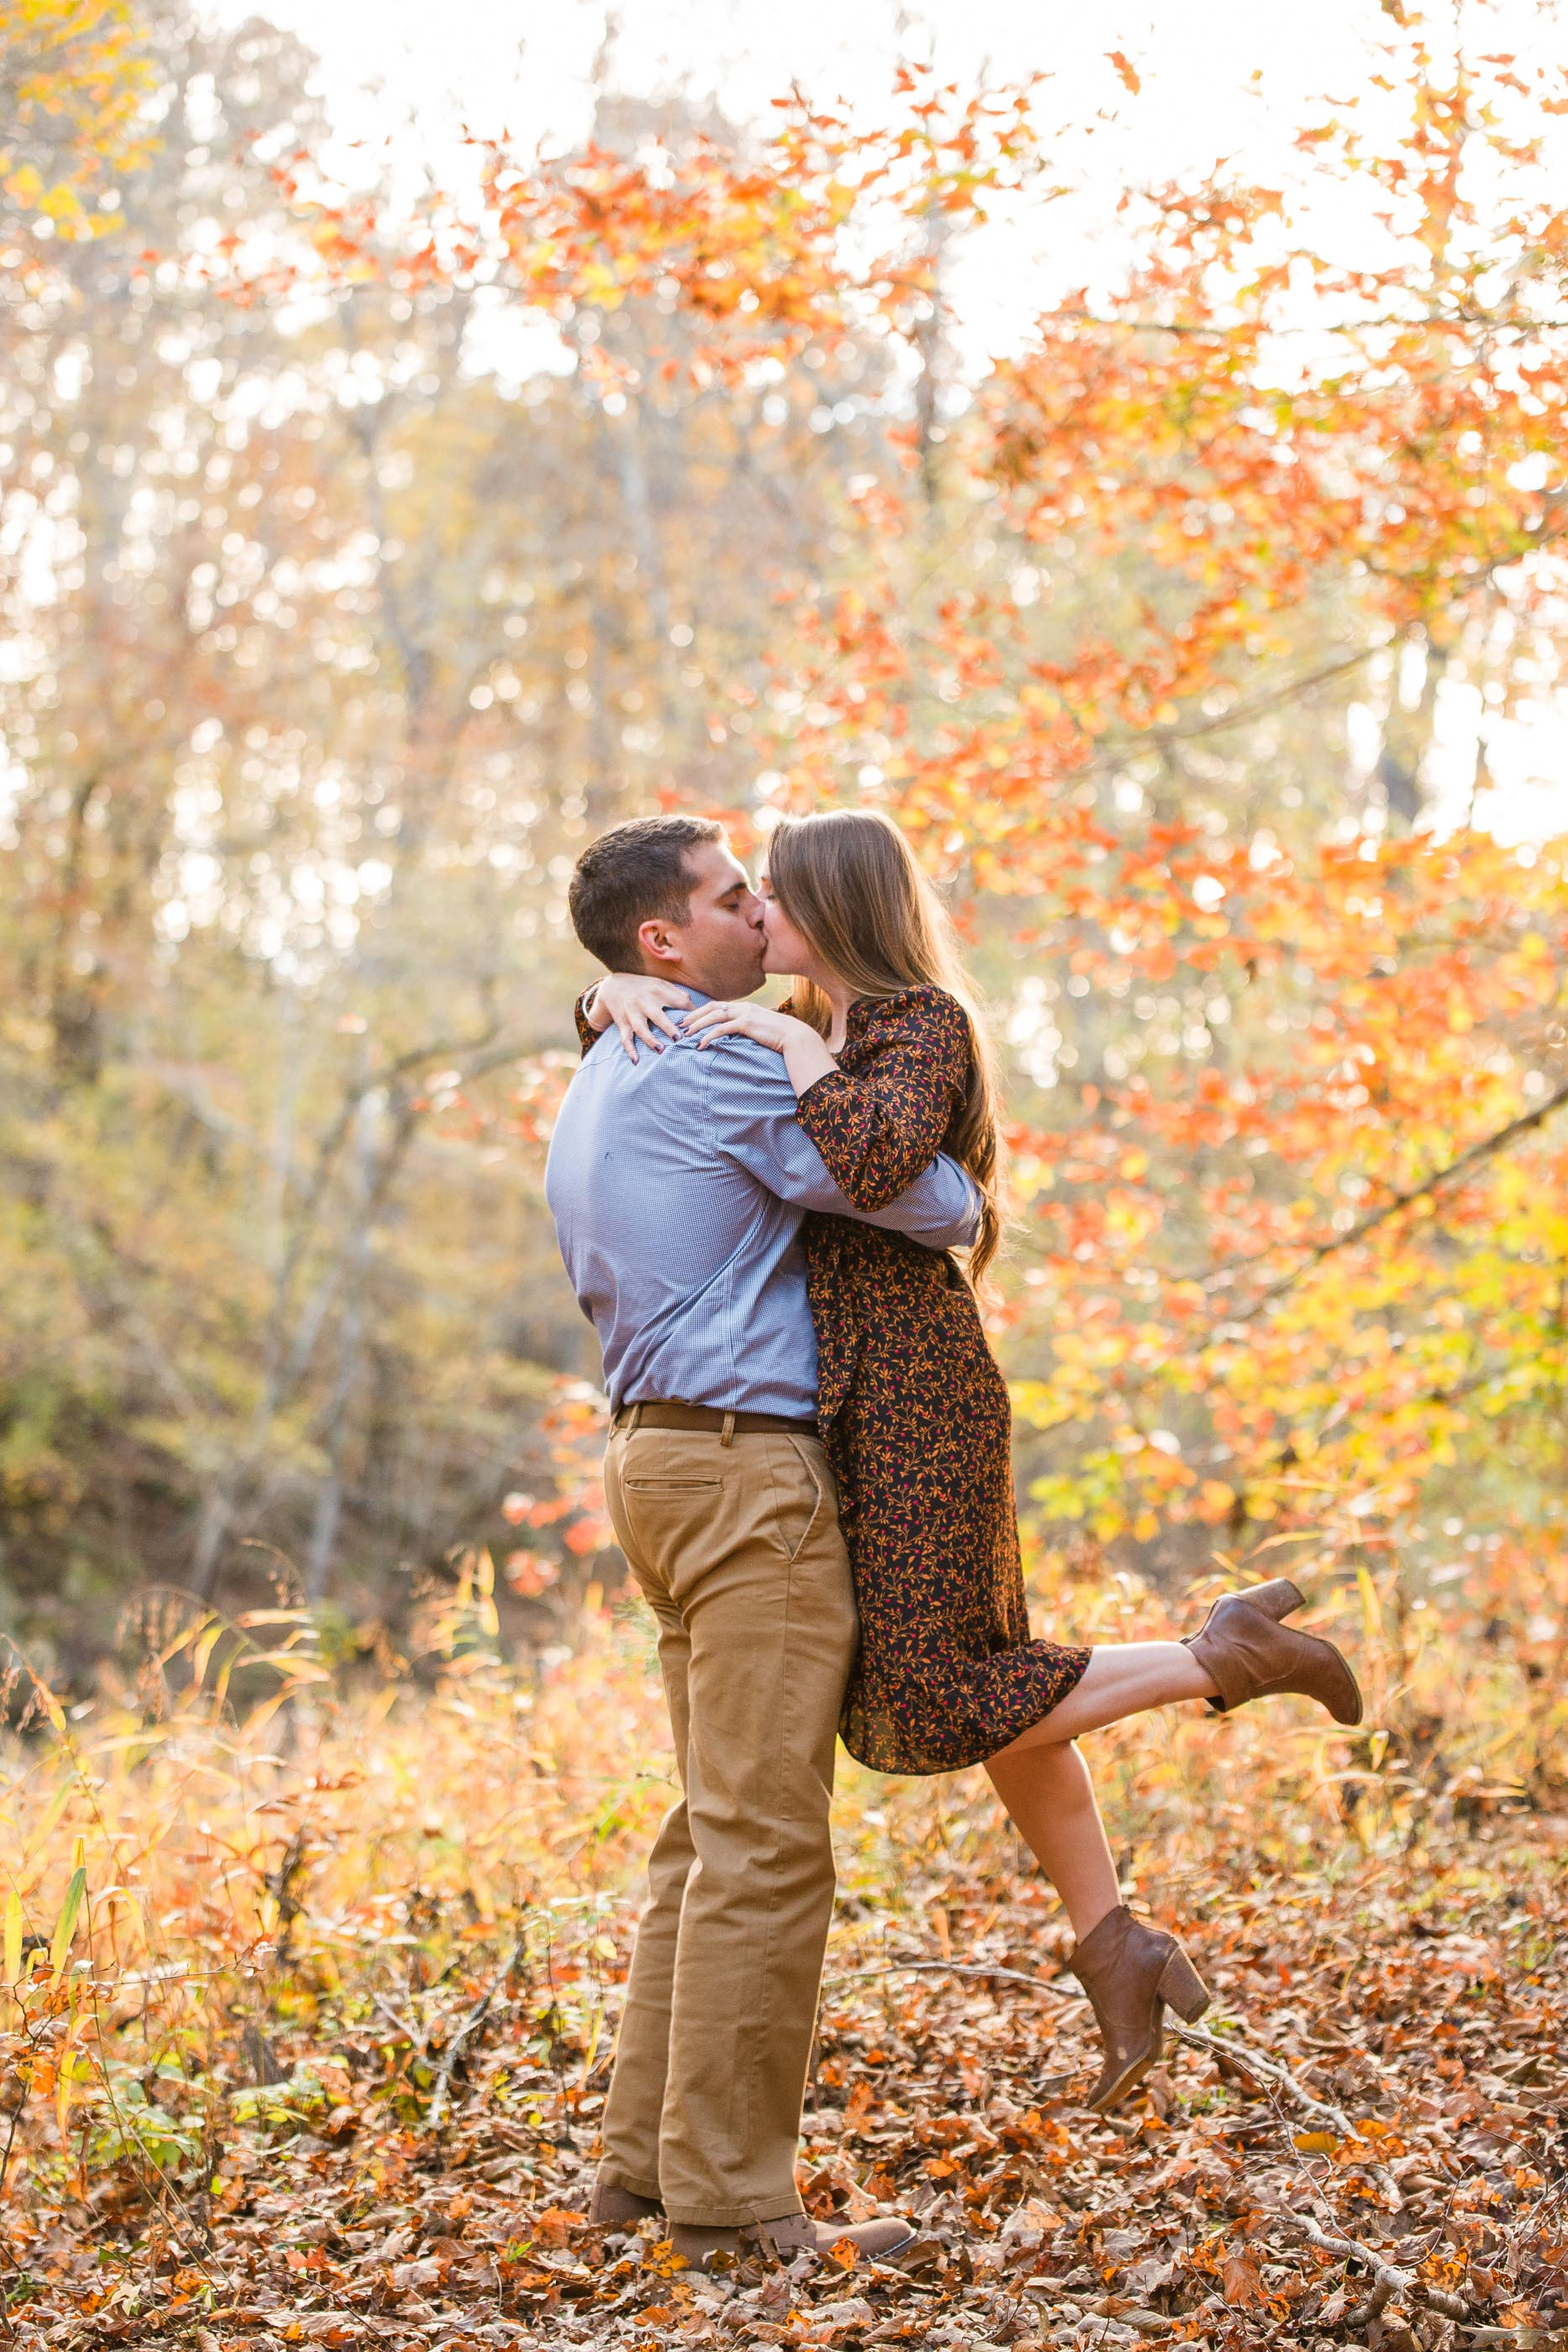 2018_11_07_michelle_francisco_engagement_eno_river-8581.jpg